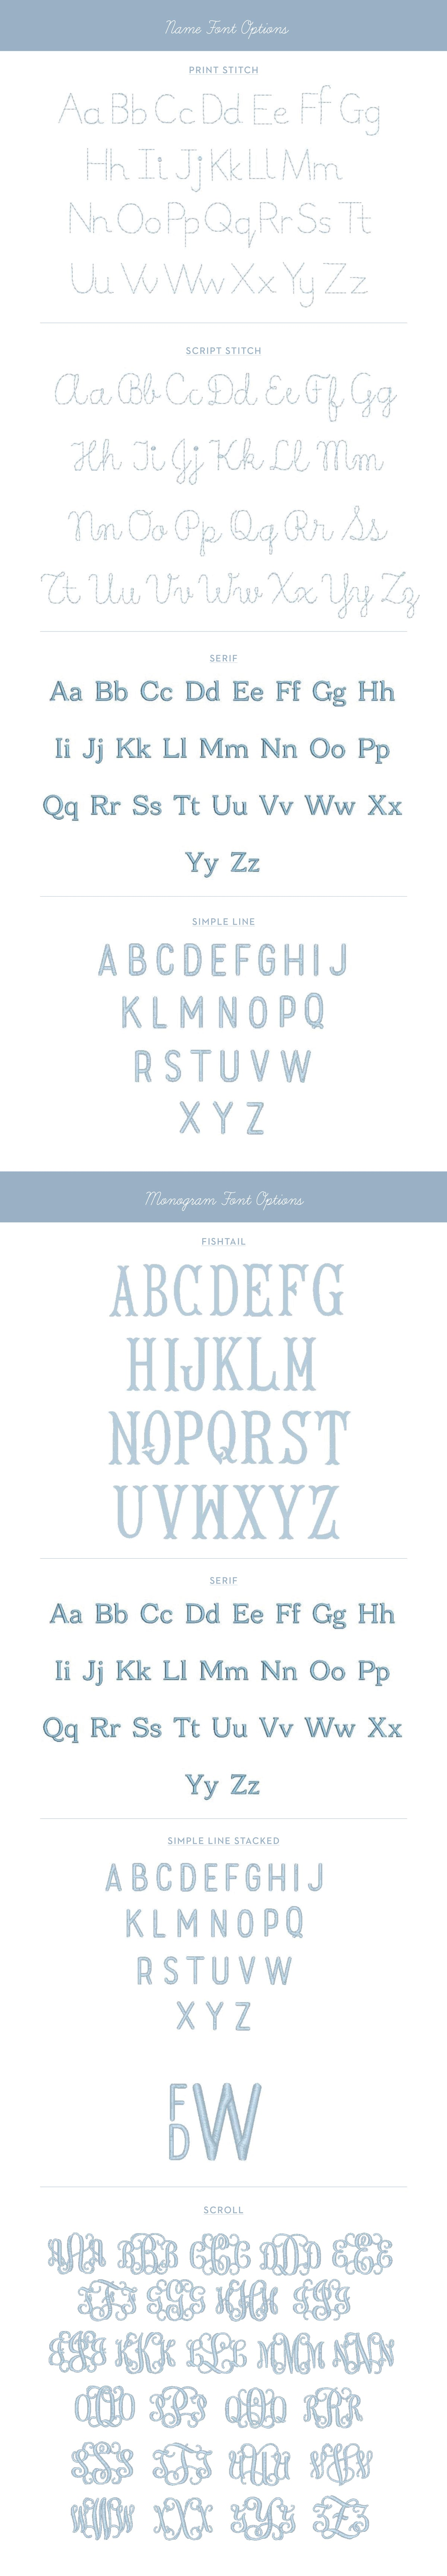 name and monogram fonts